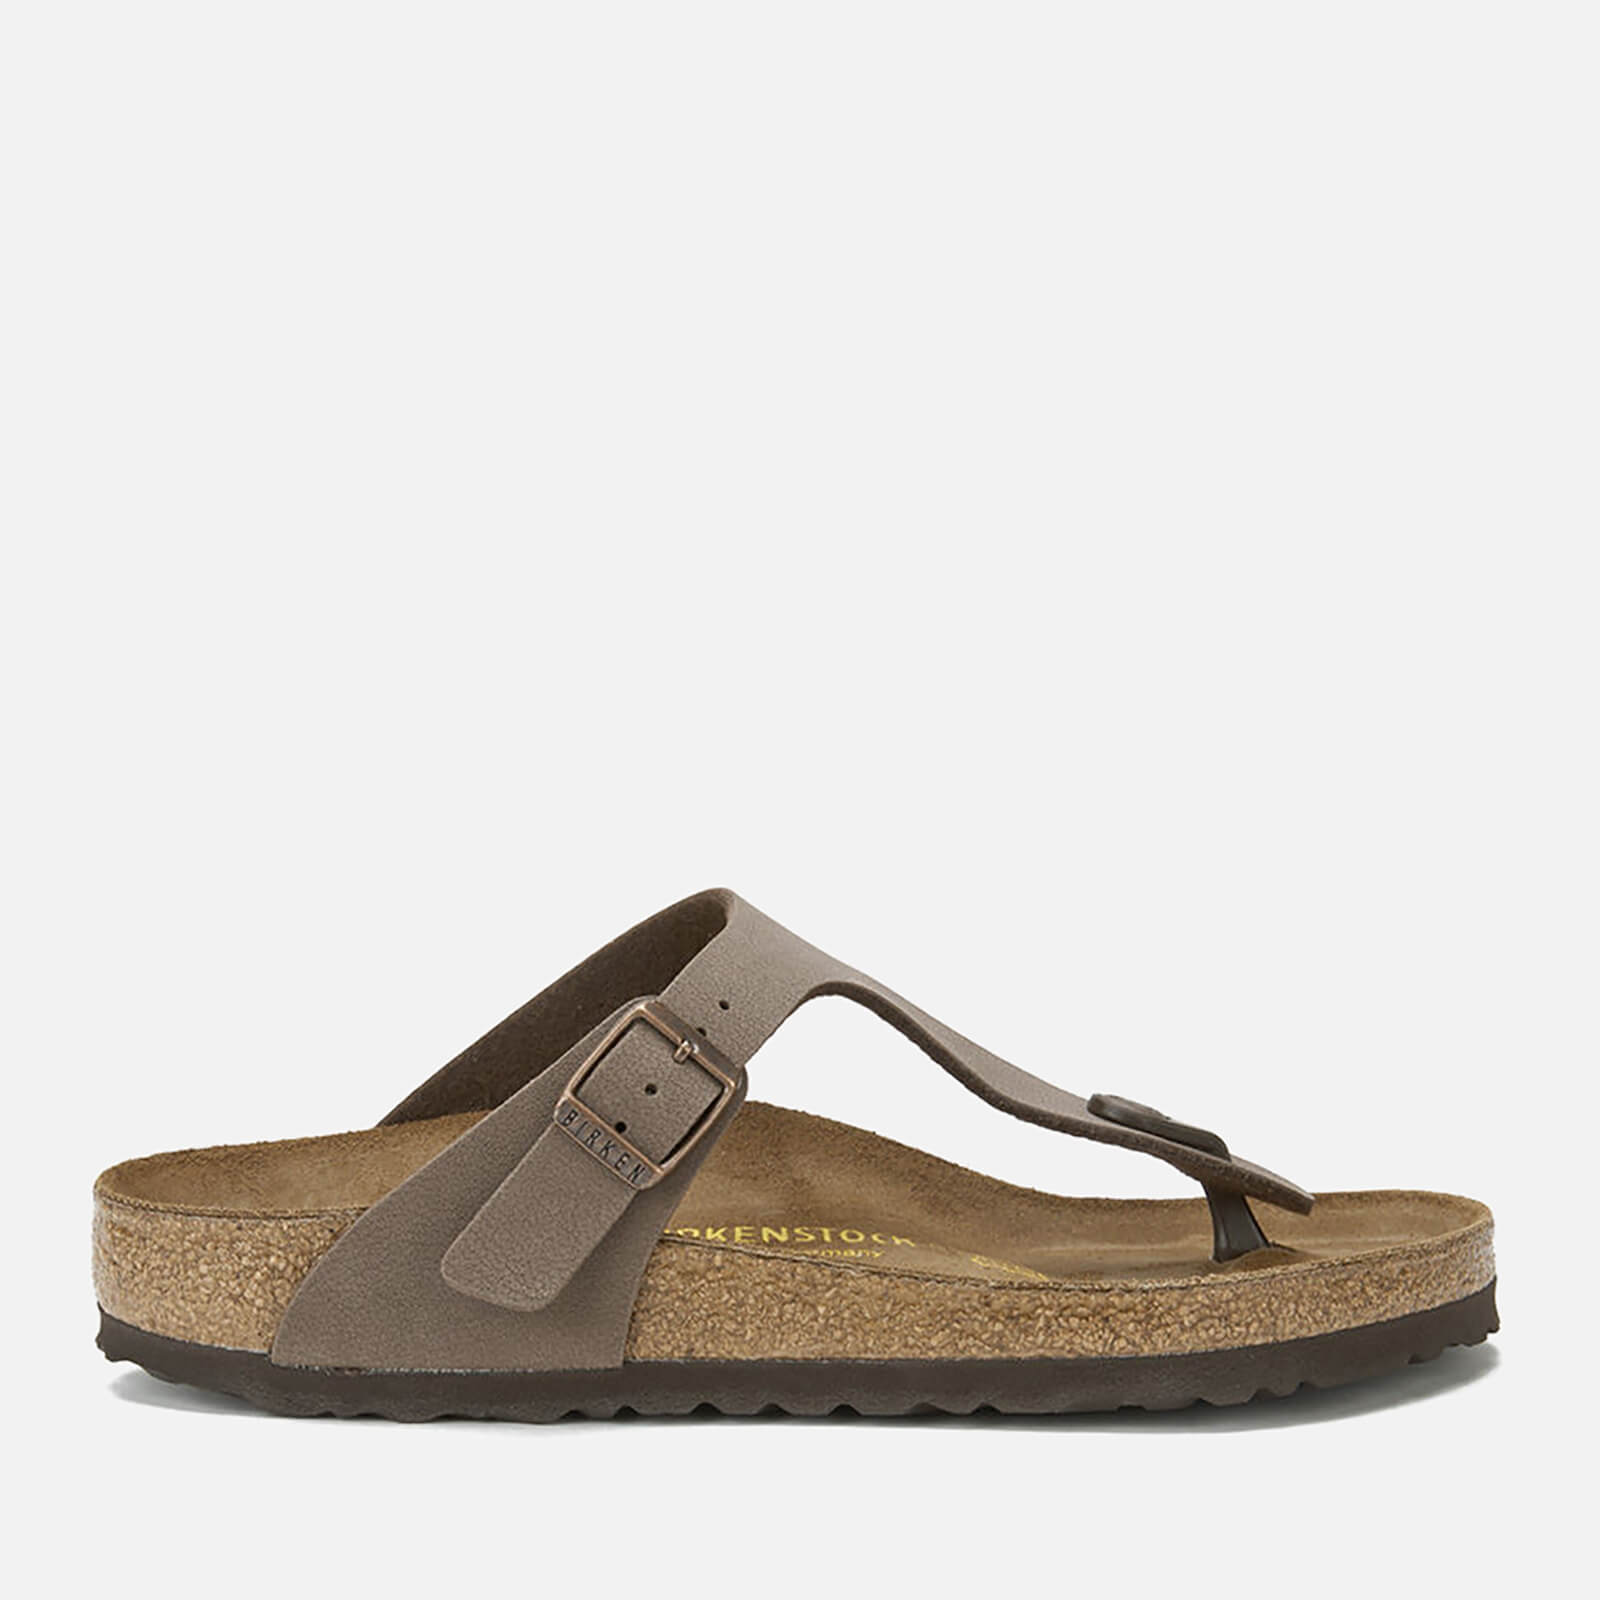 1f973b622022 Birkenstock Buyer s Guide  Everything You Need to Know - Allsole